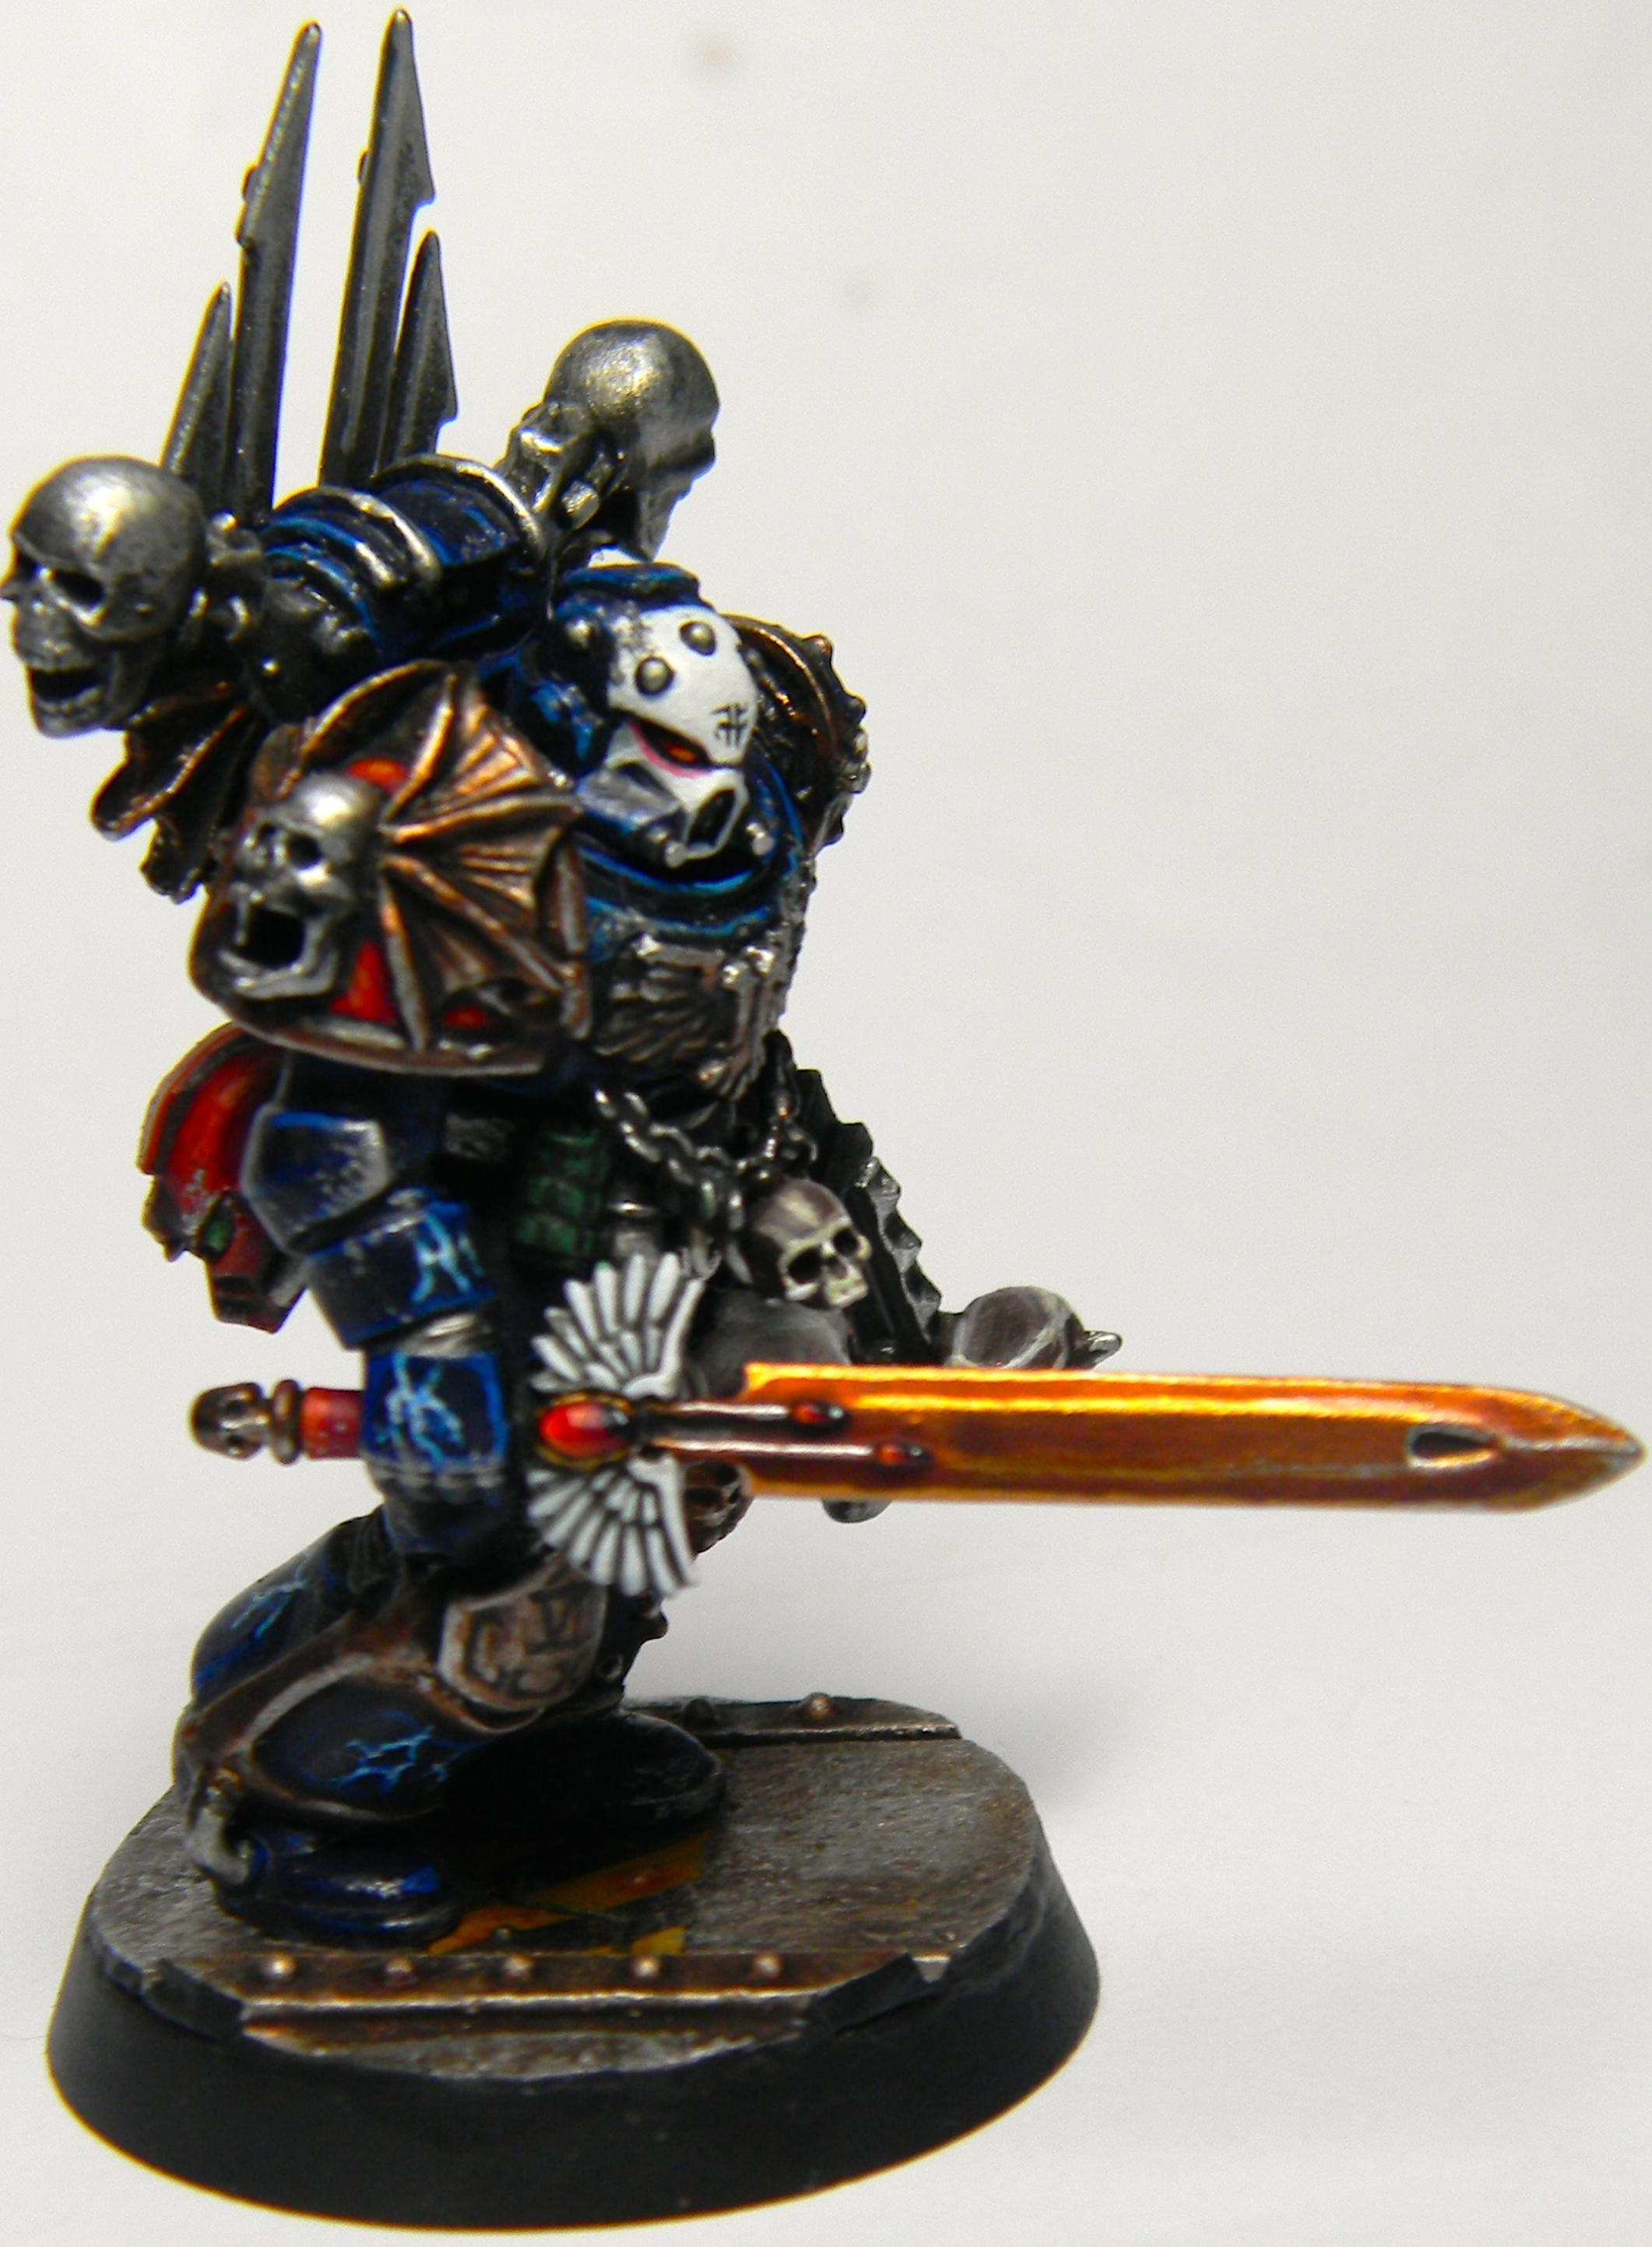 Black Library, Chaos, Conversion, Cyrion, First Claw, Night Lords, Space Marines, Talos, True Scale, Warhammer 40,000